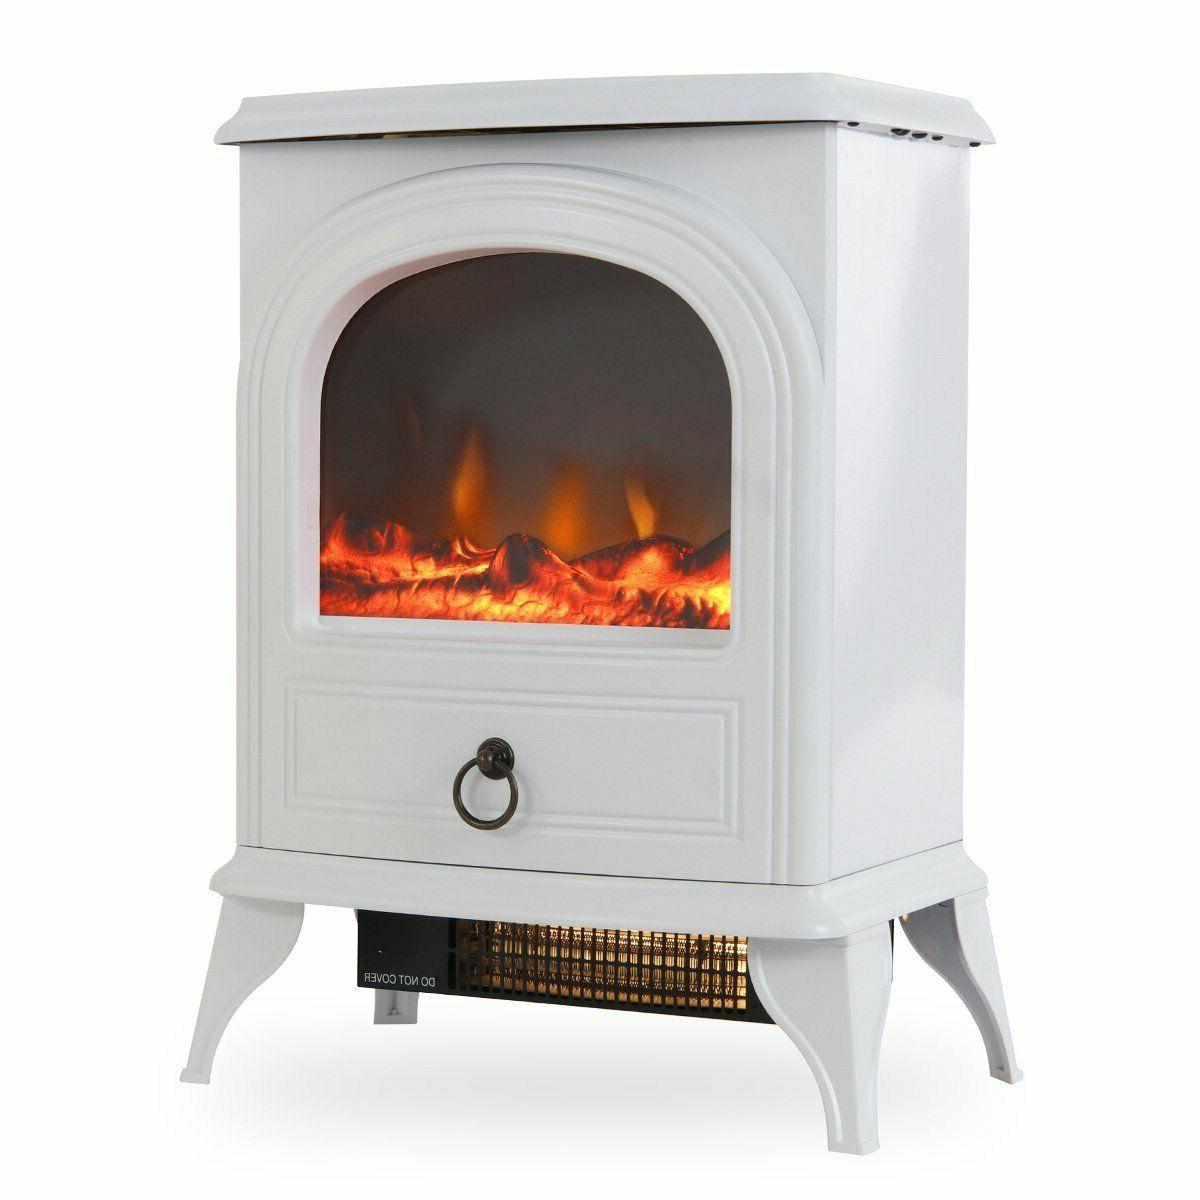 Portable Free Standing Electric Fireplace Retro Vintage Heat